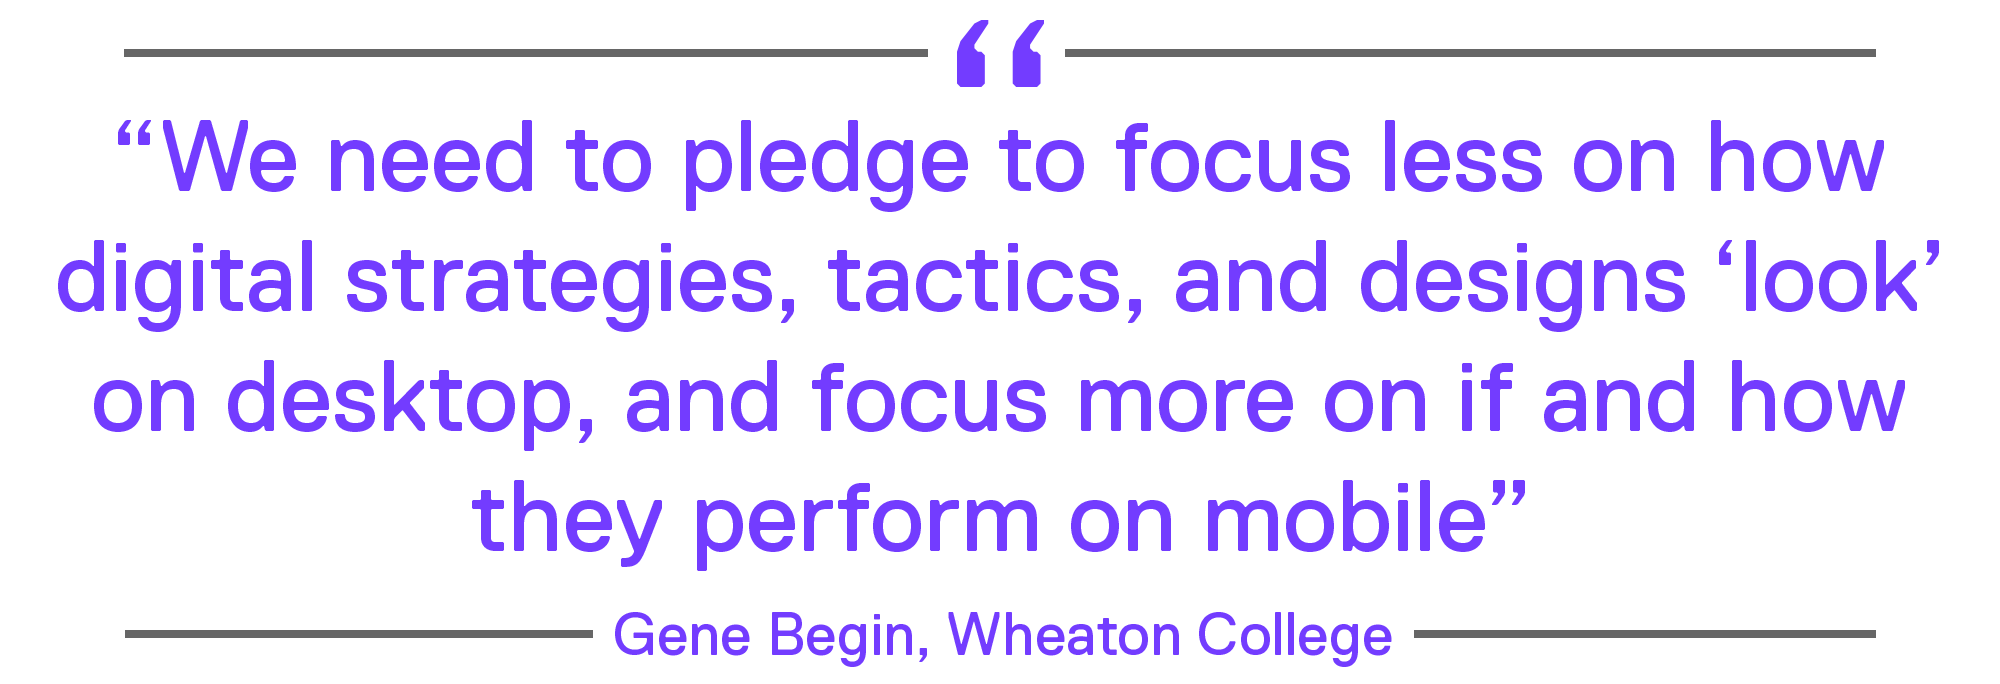 "We need to pledge to focus less on how digital strategies, tactics, and designs 'look' on desktop, and focus more on if and how they perform on mobile."" – Gene Begin, Wheaton College"